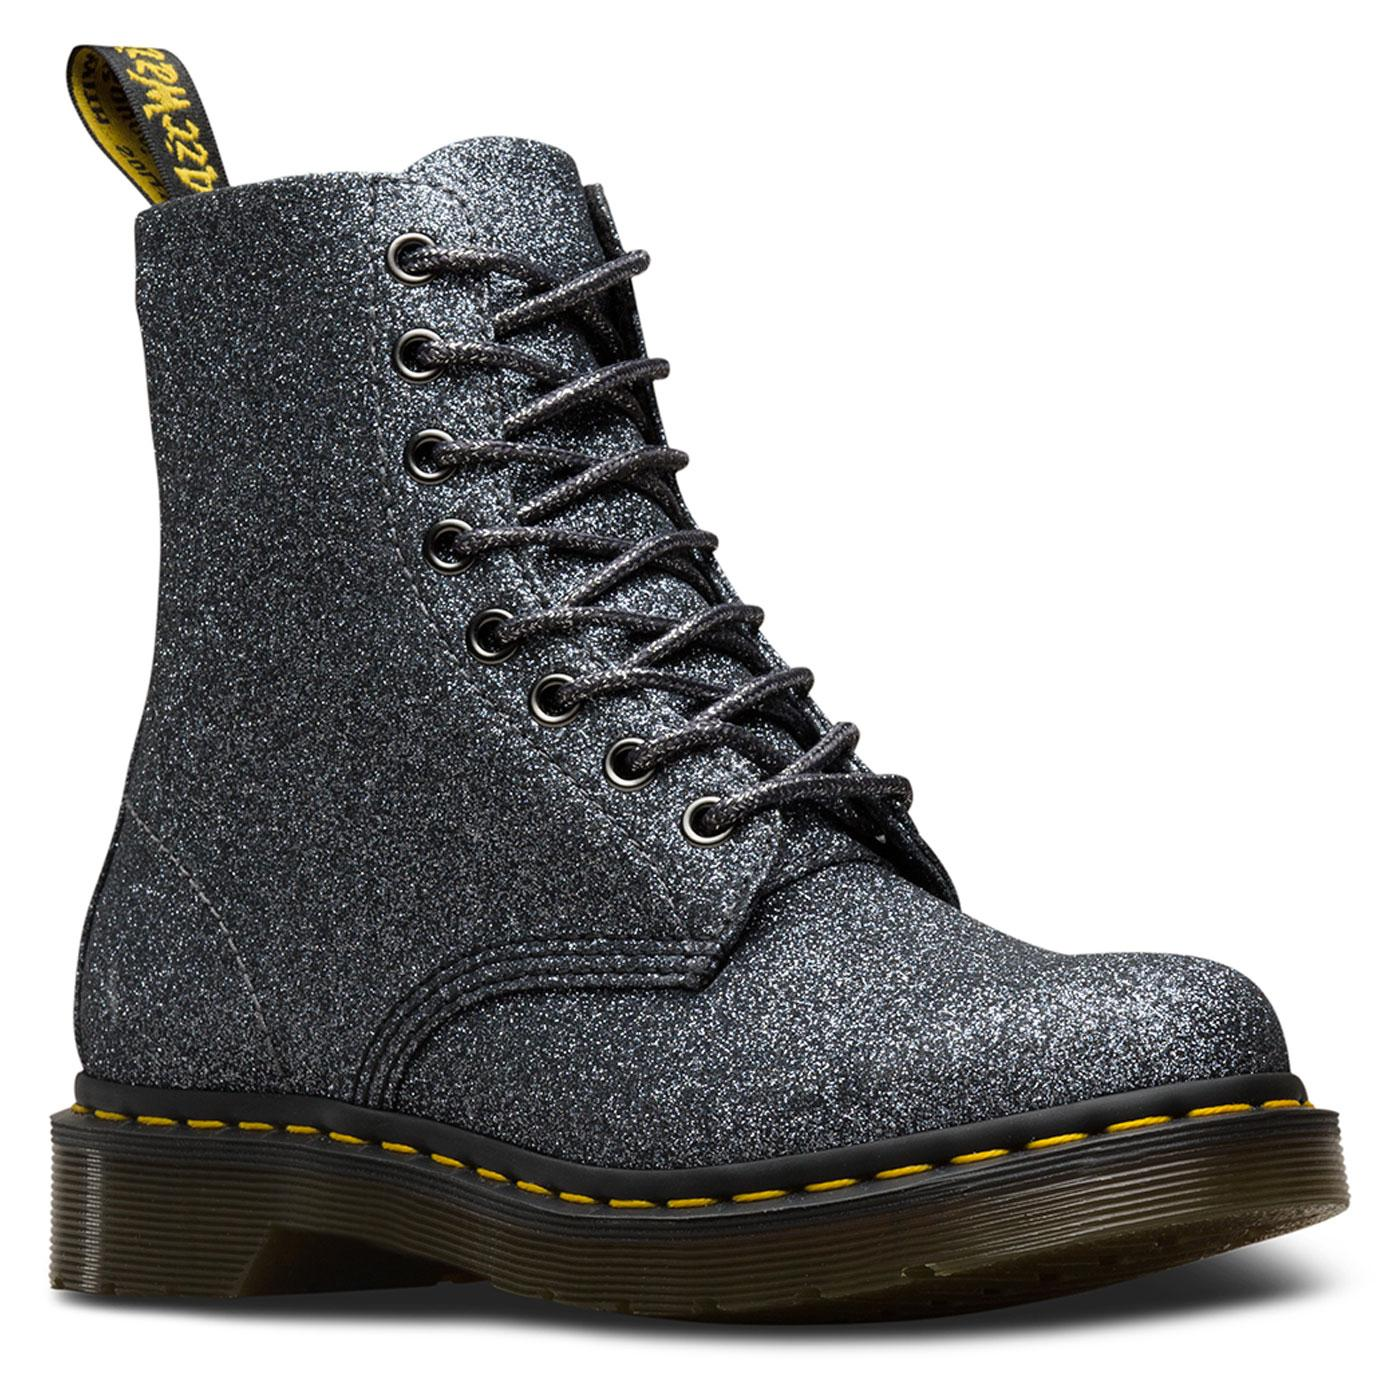 Pascal DR MARTENS 1460 Boots In Pewter Glitter